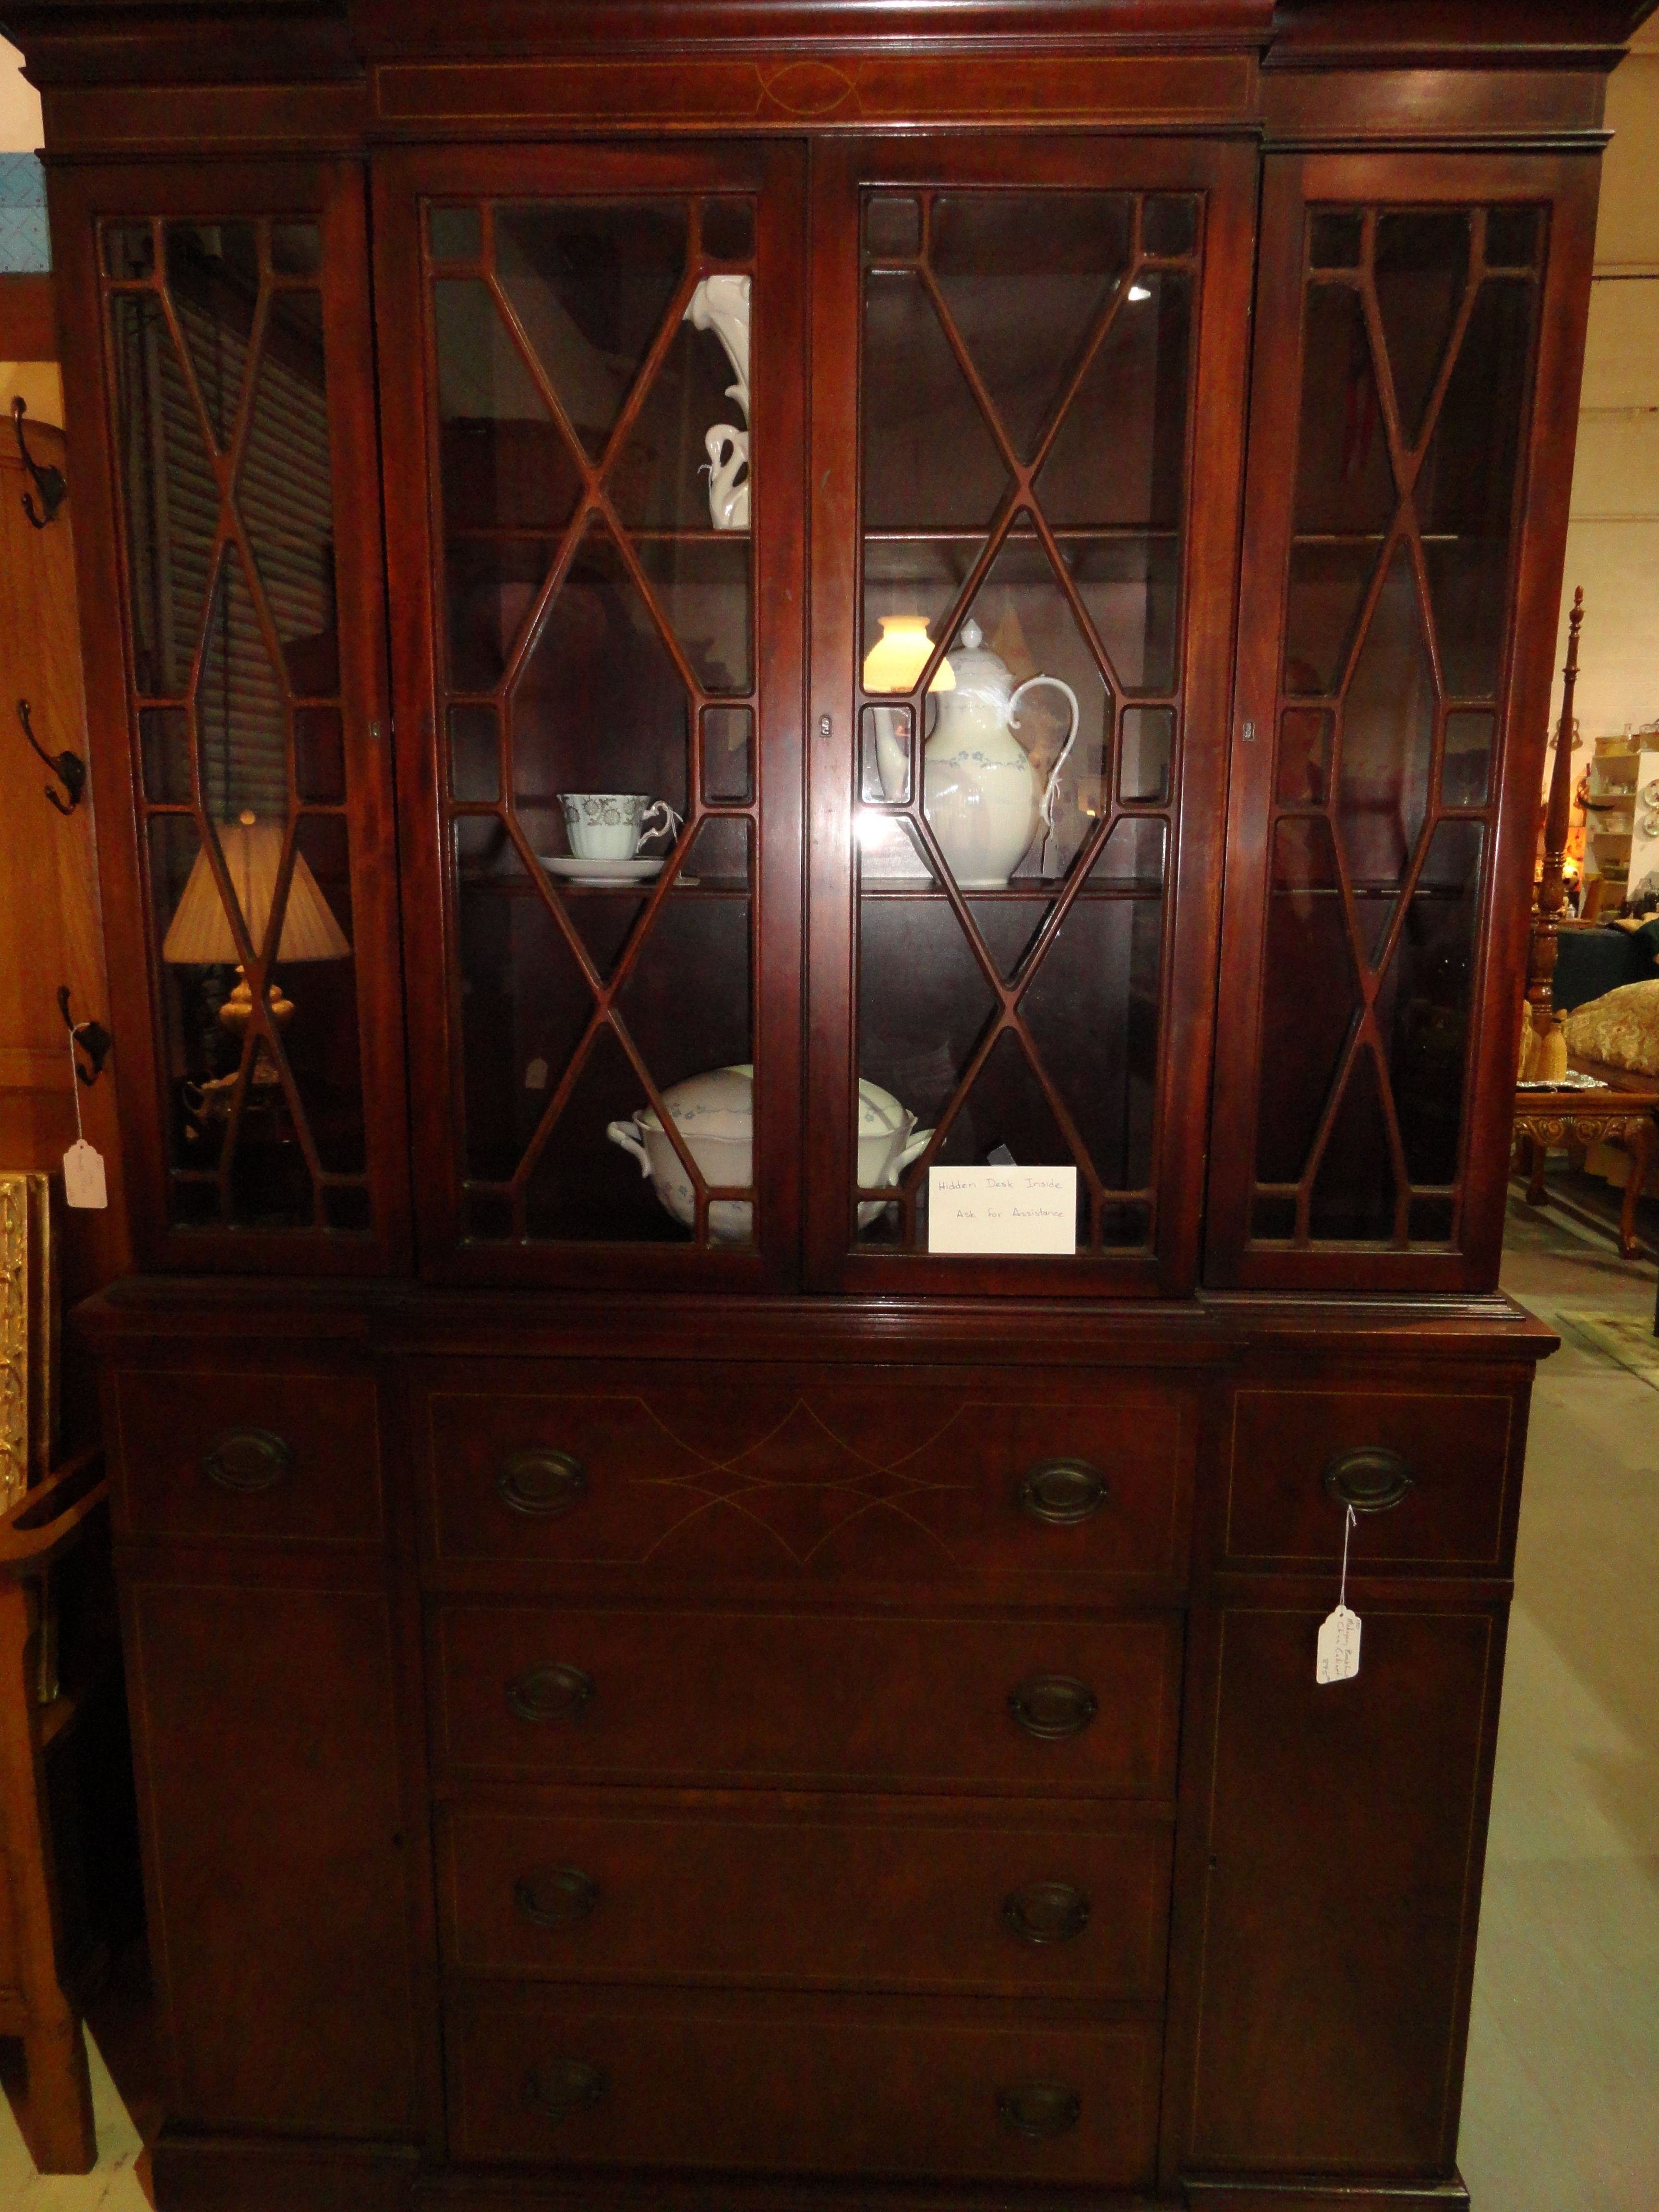 Bon Large Mahogany Cabinet With Hidden Pull Out Desk Inside.